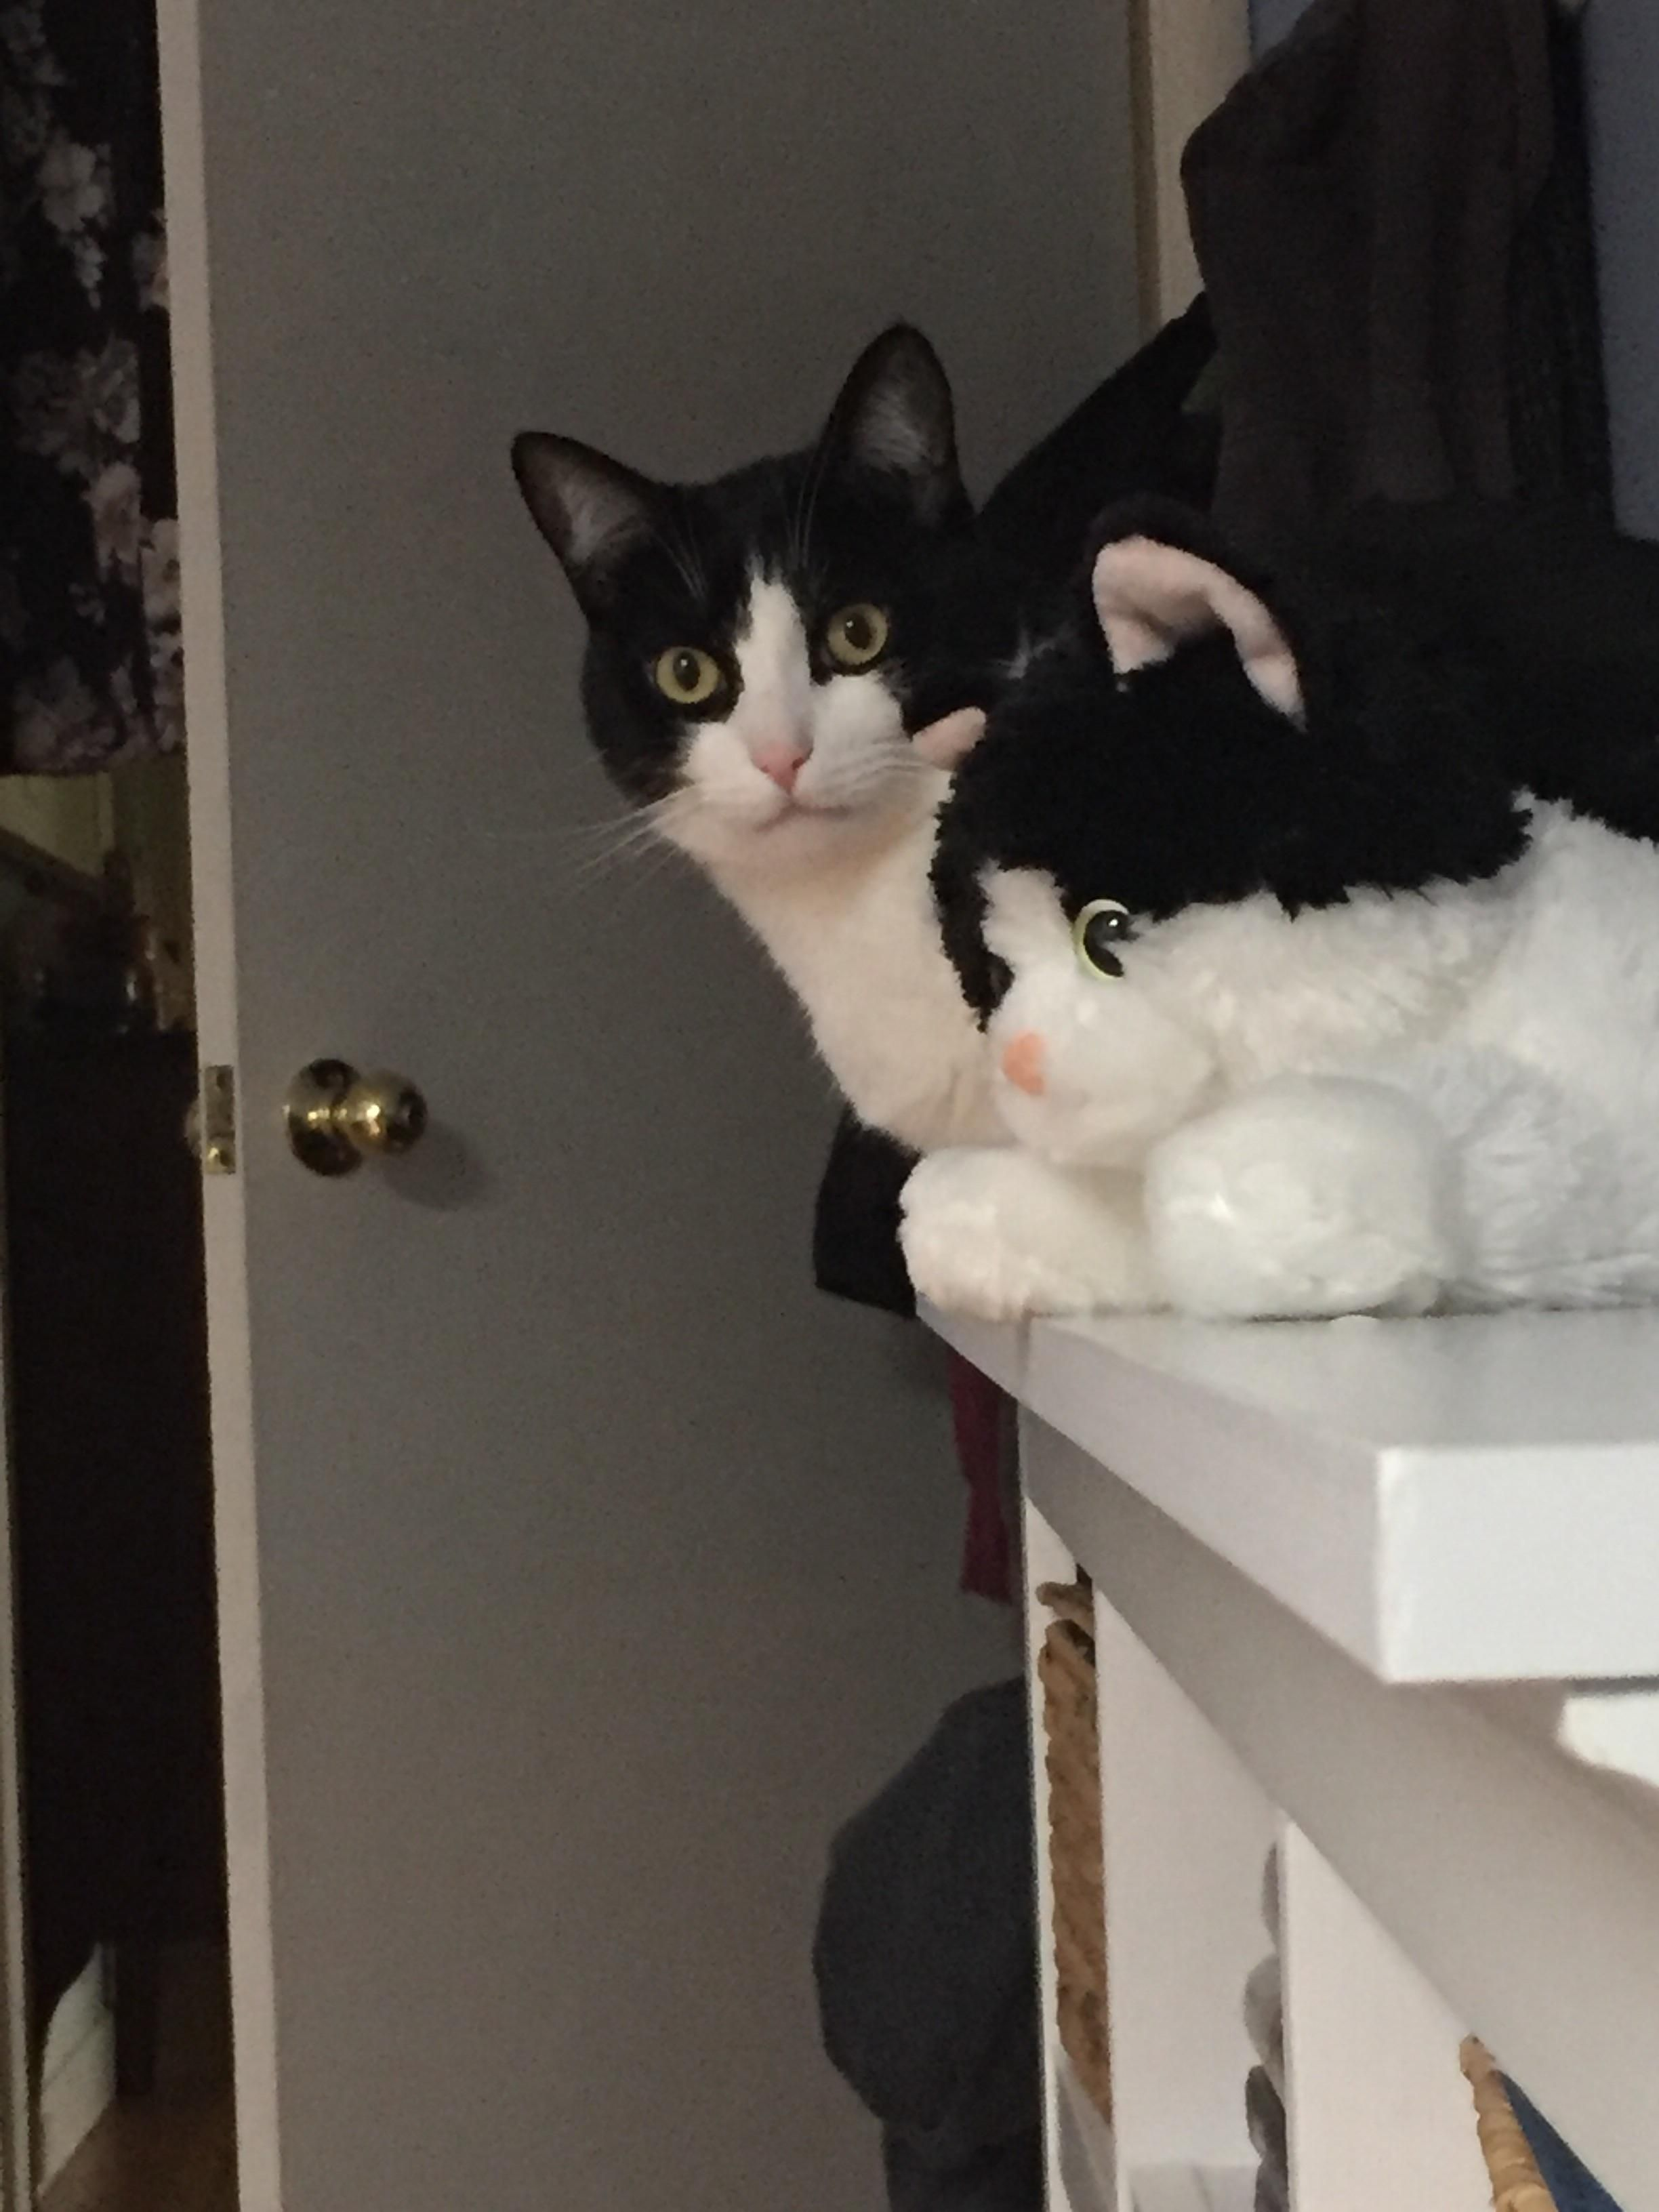 My cat twinning with his stuffed animal doppelgänger http://ift.tt/2oF5Ydu